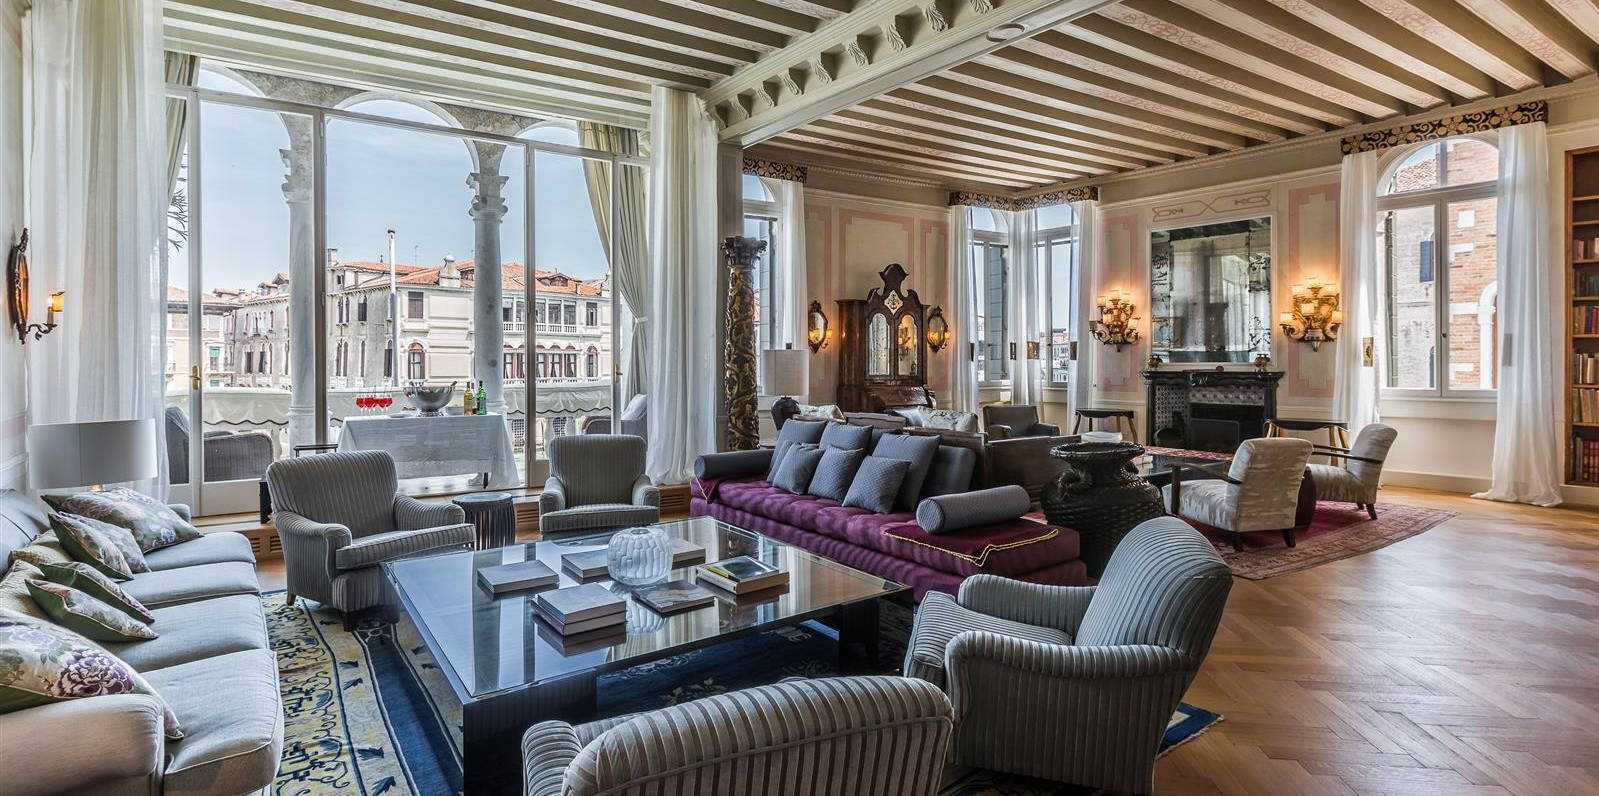 Hotels & Accommodation - Whether you are looking to rent a fabulous private Palazzo on the Grand Canal or a luxurious hotel room, you can count on us to find exactly what you need for the occasion.